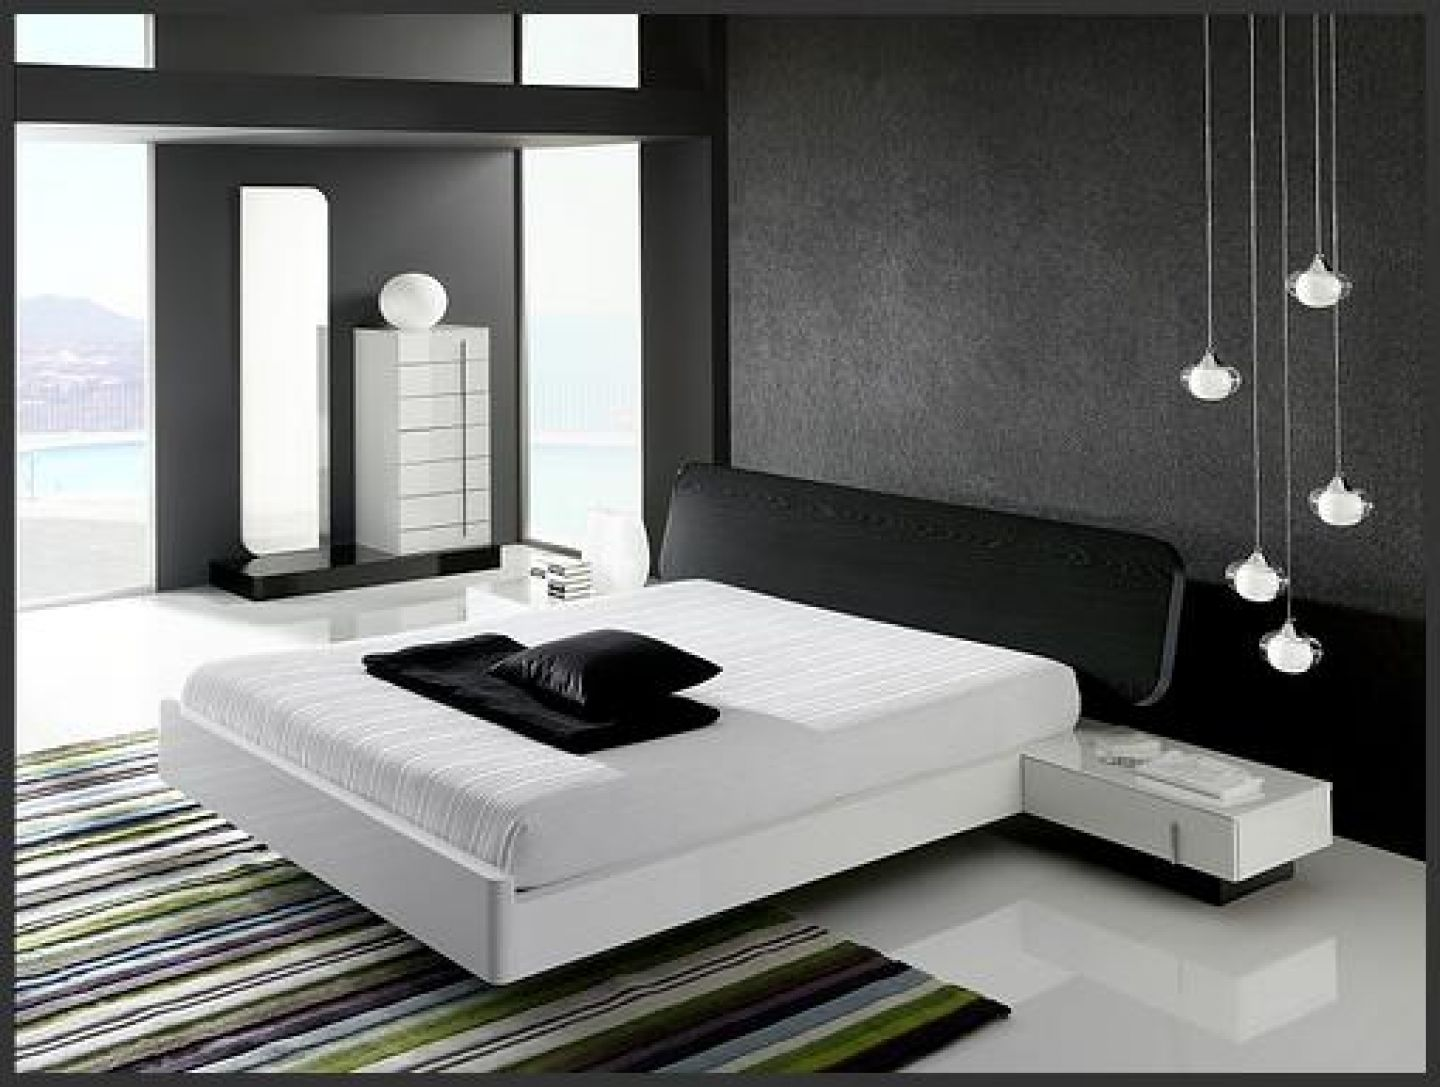 Interior Minimalist Black And White Bedroom Interior Design Elegant Black  White Room Designs. Interior Minimalist Black And White Bedroom Interior Design